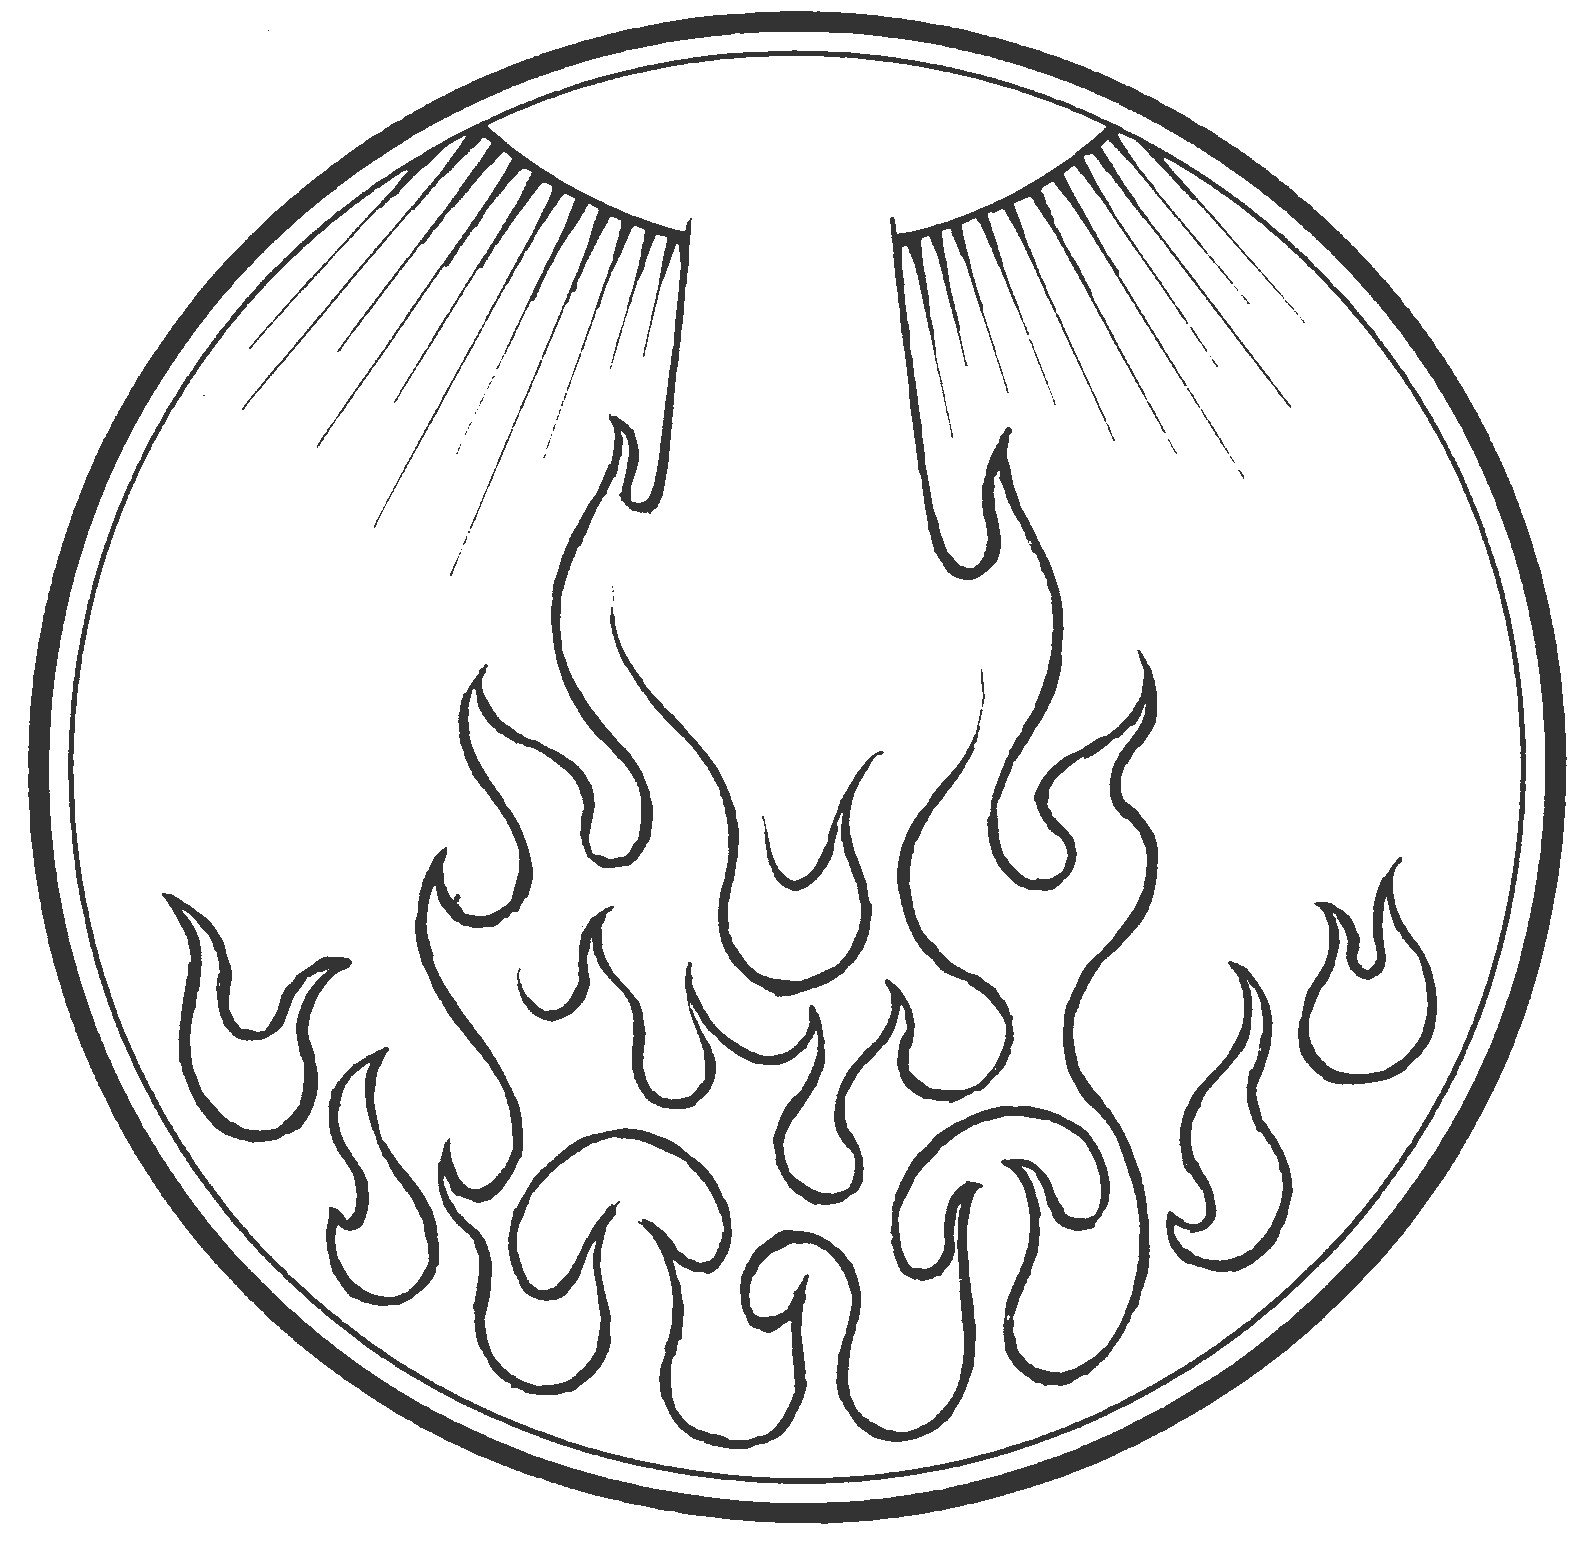 The feast of the day of pentecost immanuel lutheran church for Pentecost coloring pages